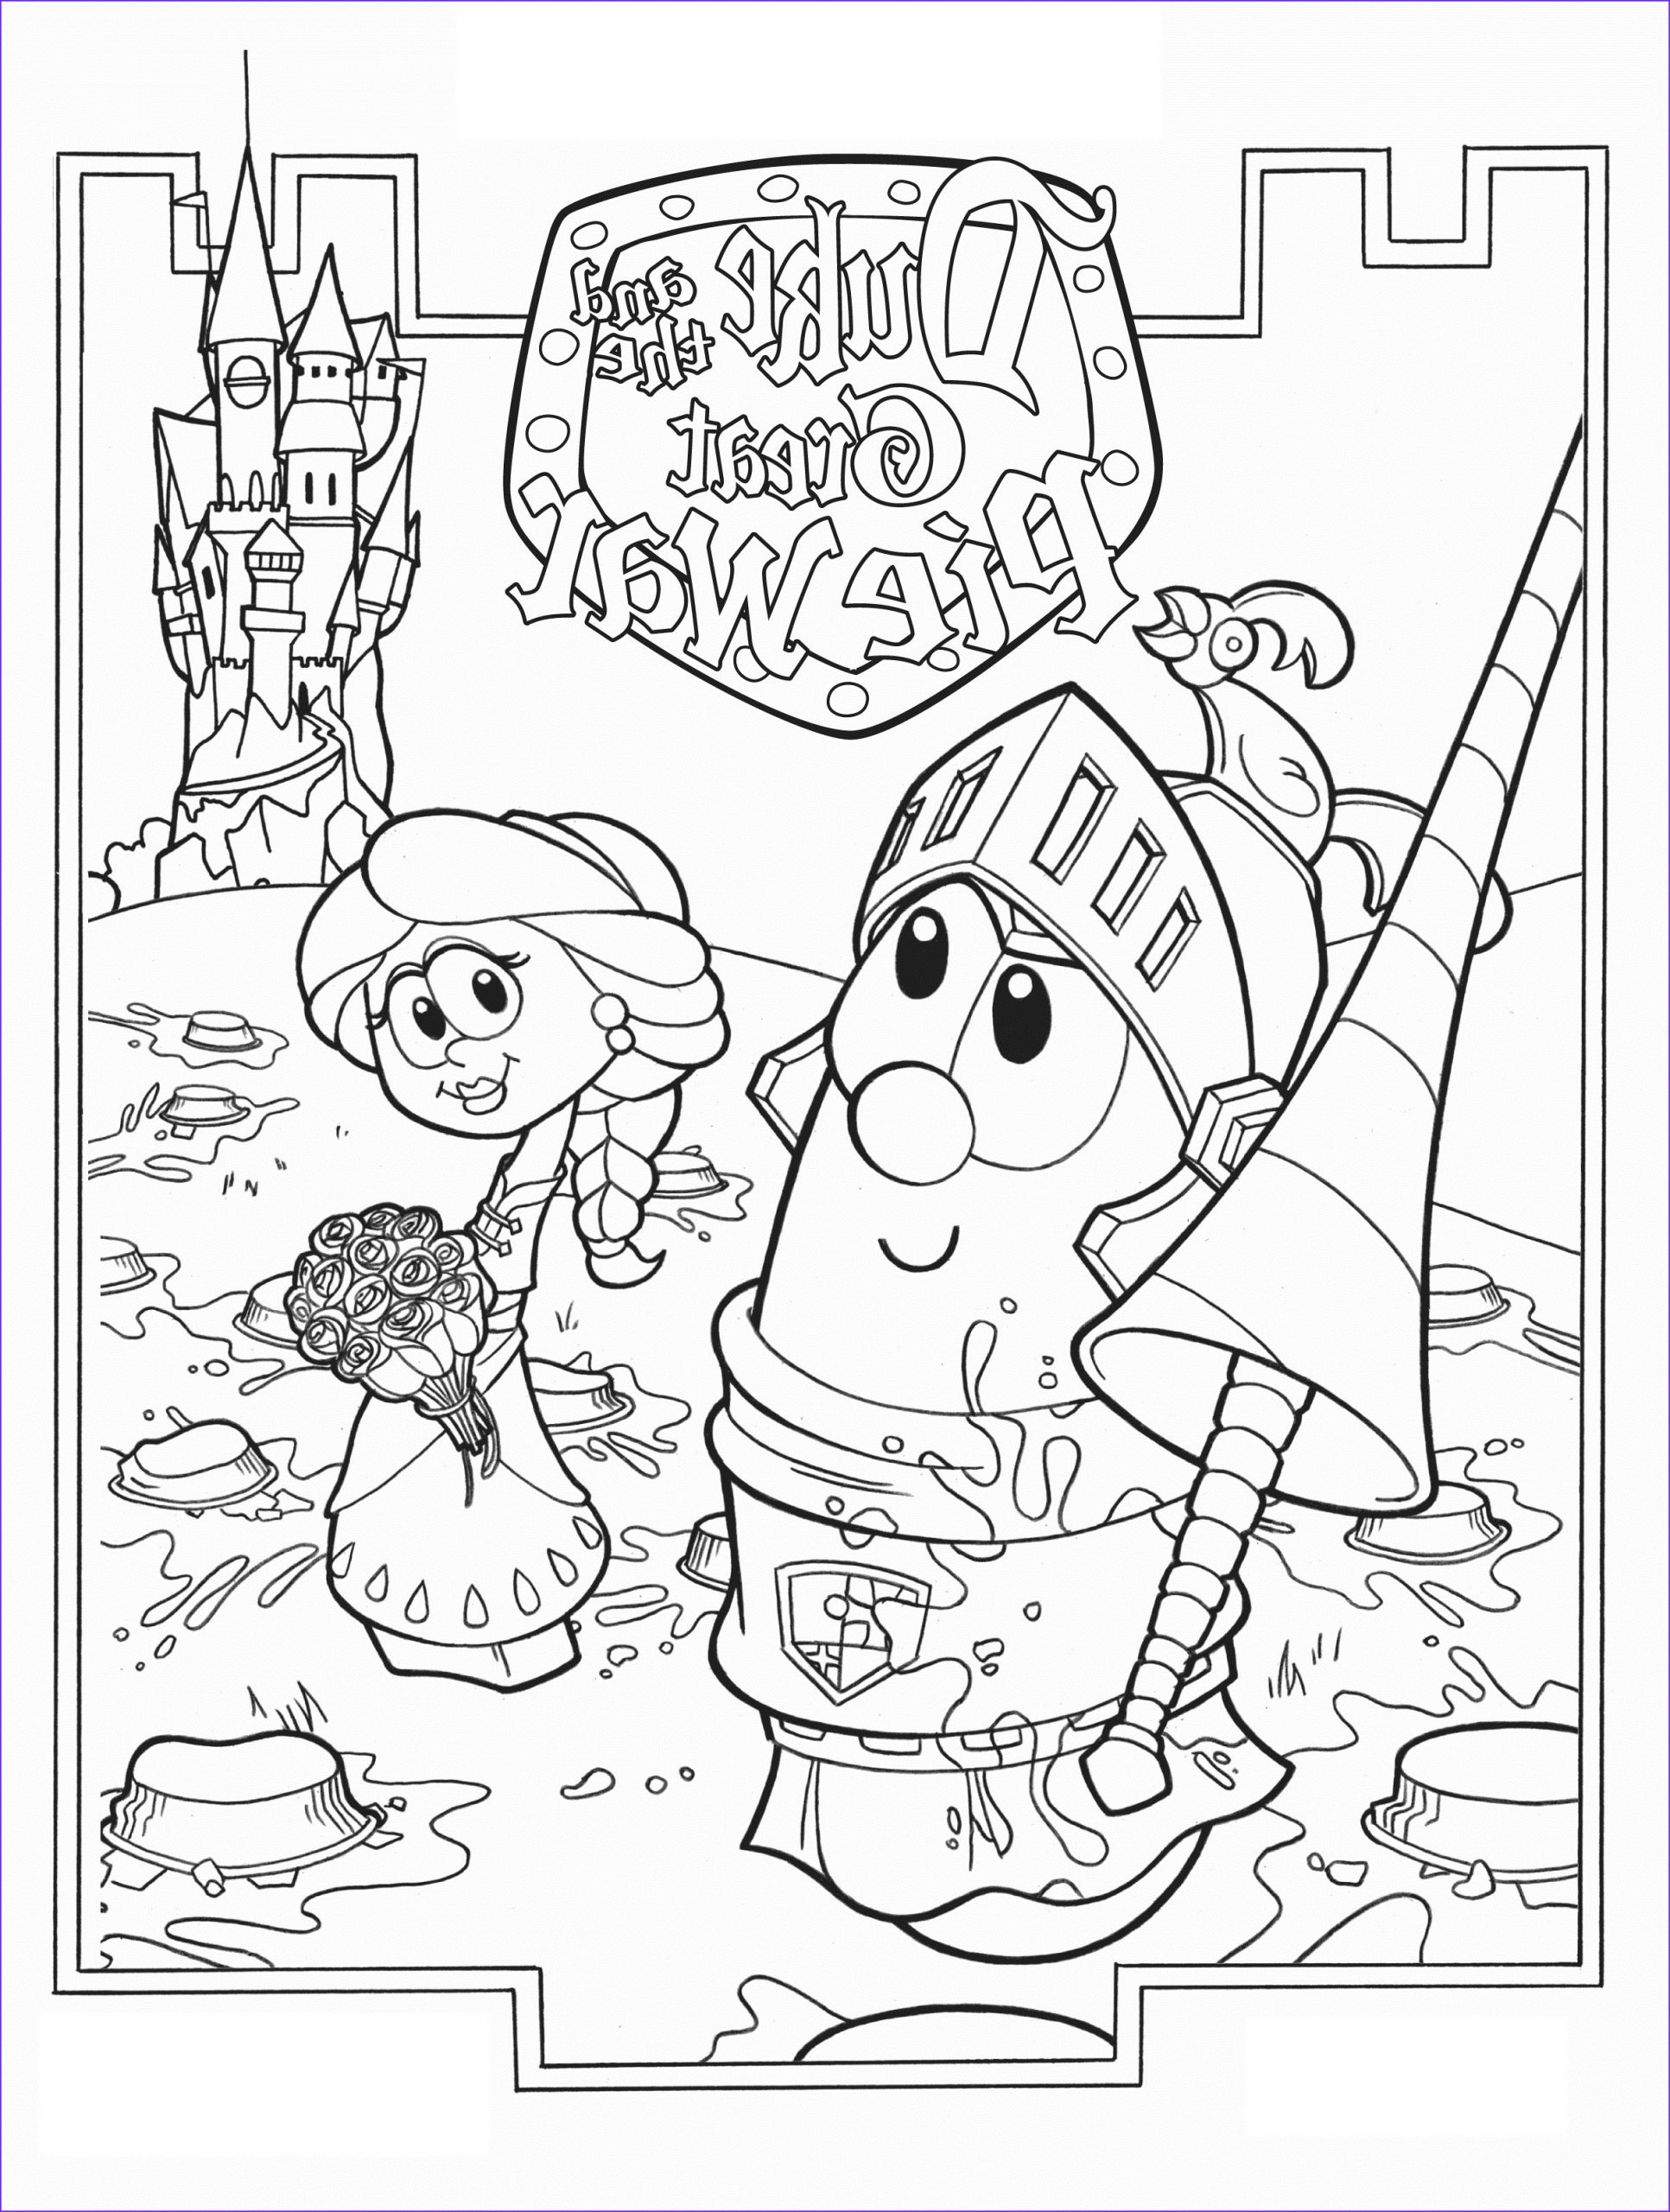 Veggie Tales Coloring Book New Photography Free Printable Veggie Tales Coloring Pages for Kids